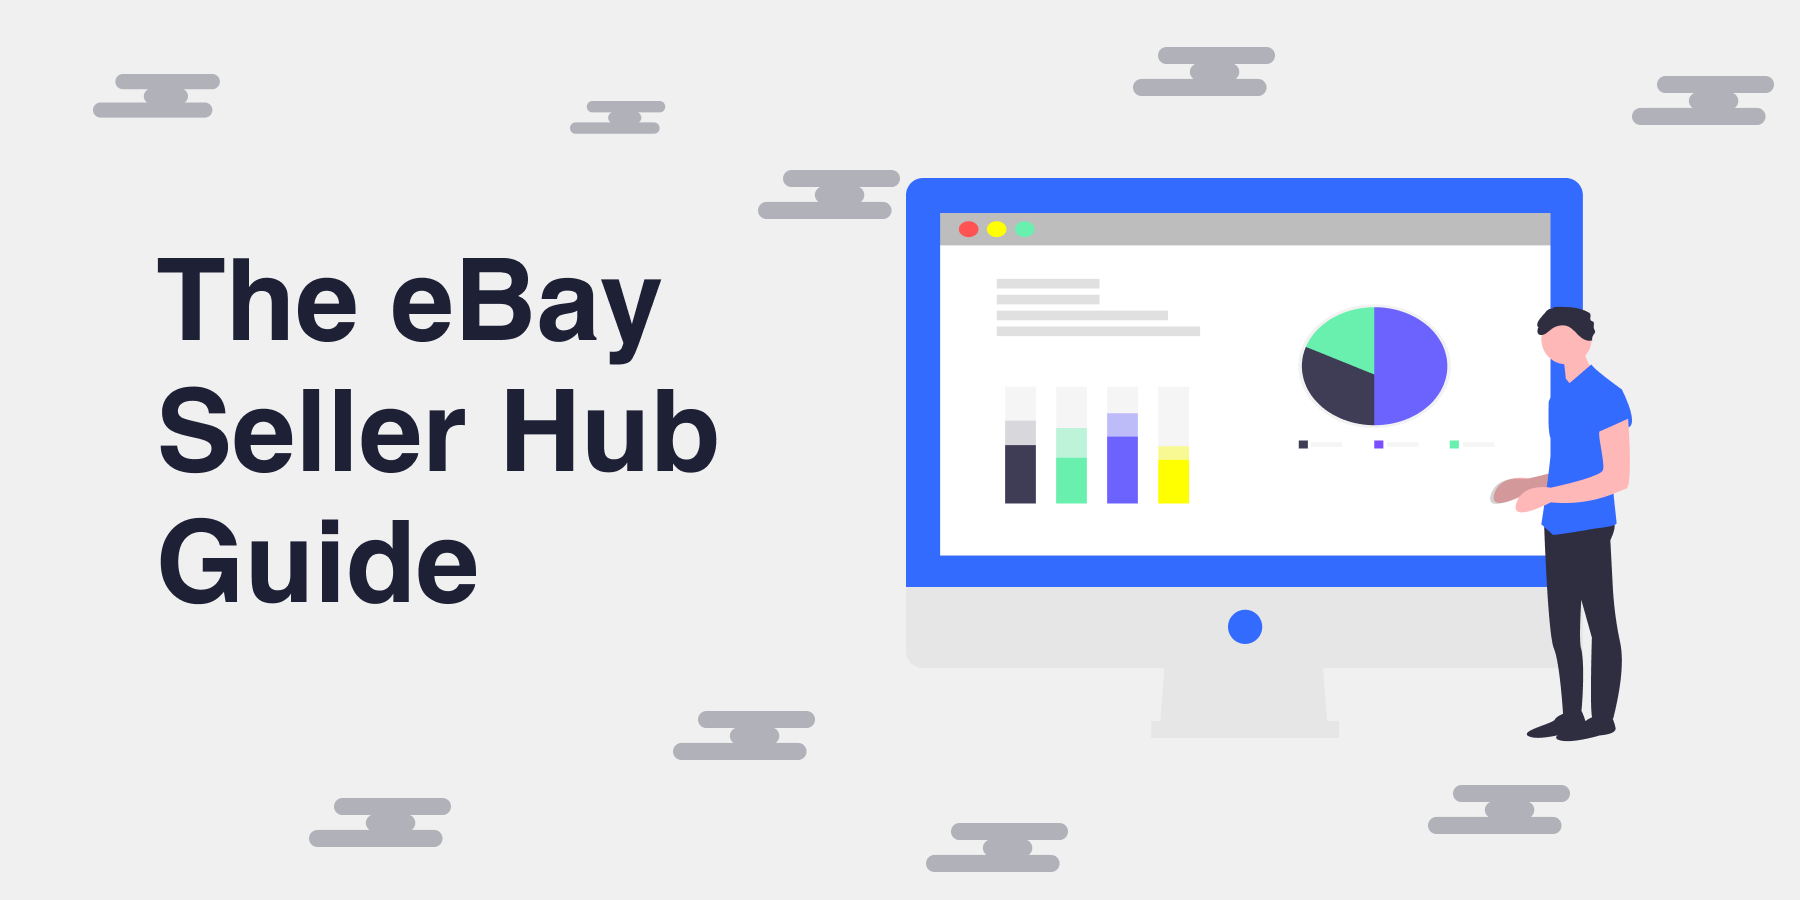 The eBay Seller Hub Guide